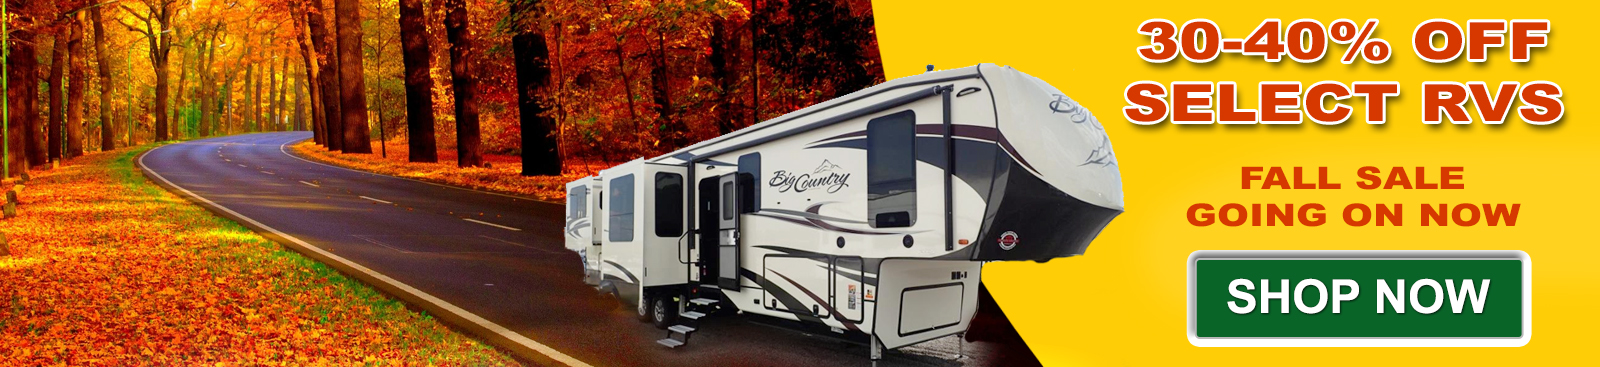 New RVs On Sale